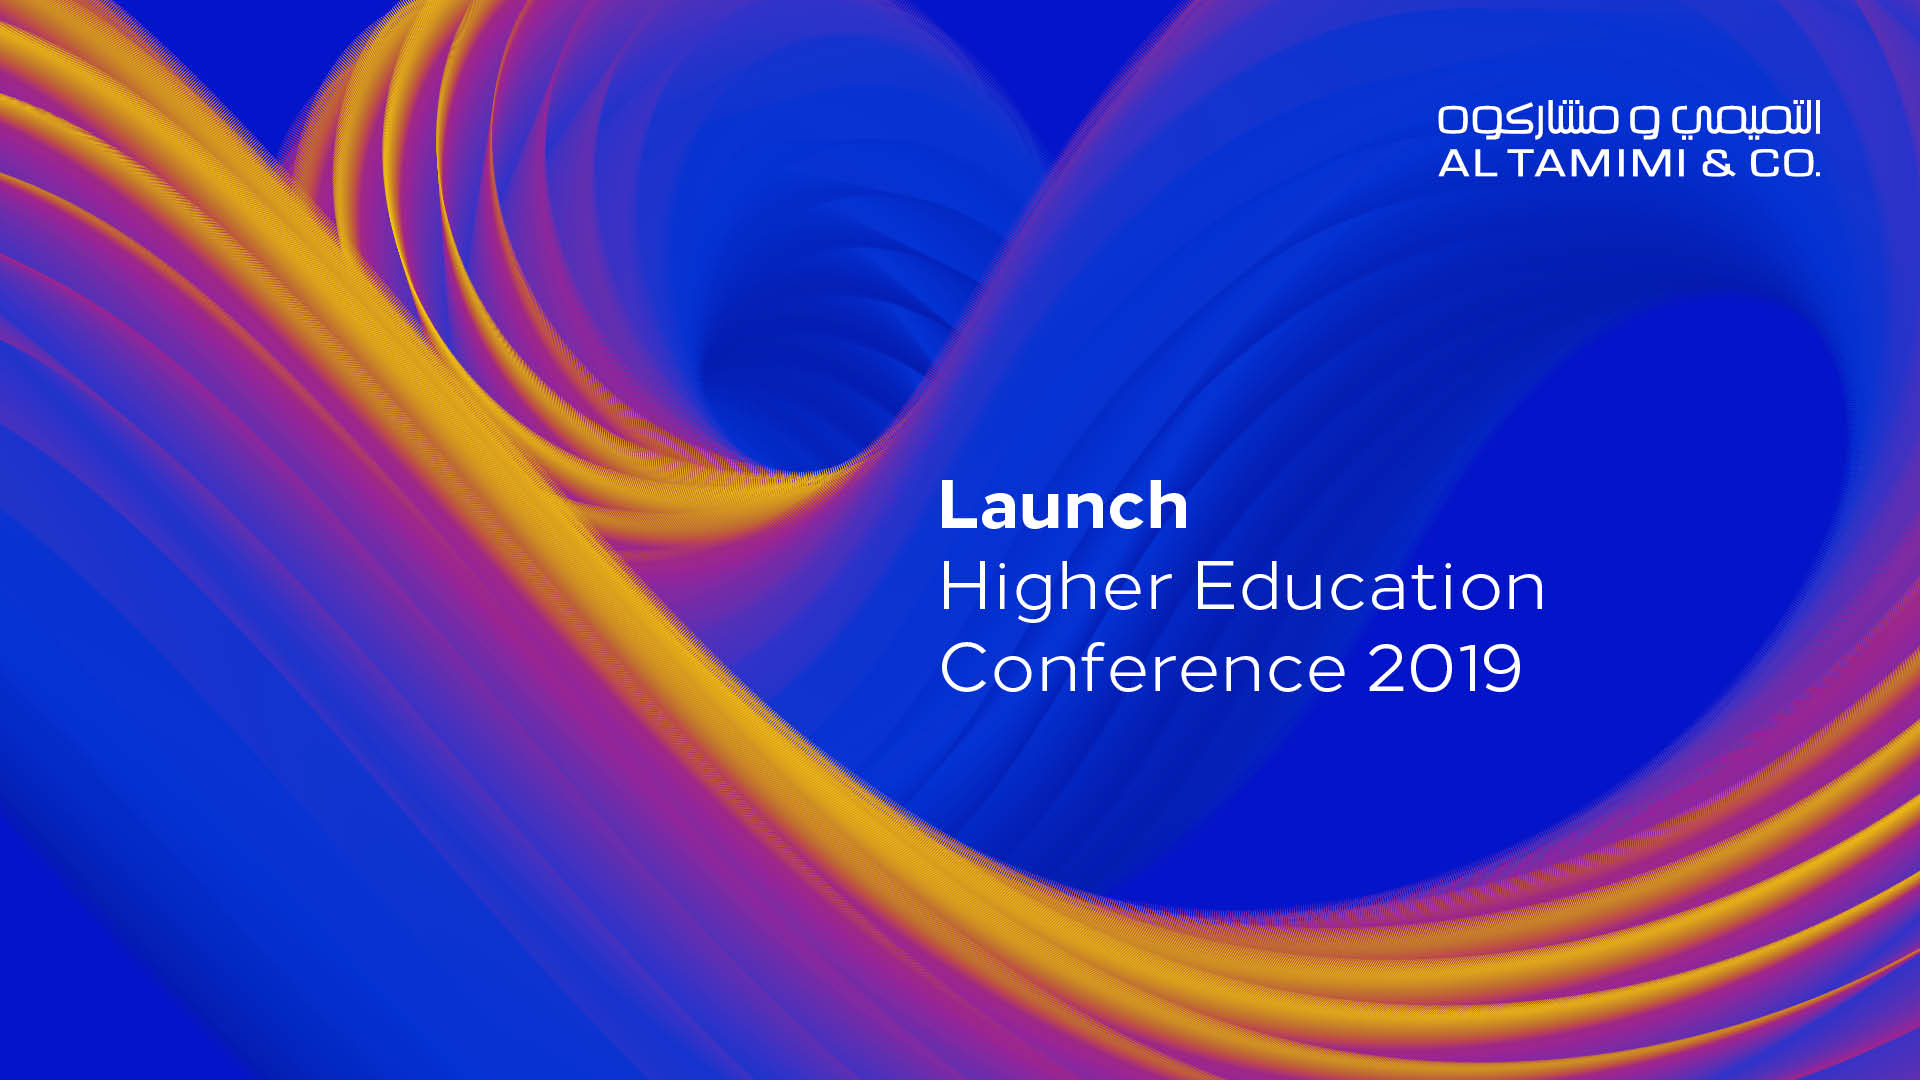 Higher Education Conference 2019 Launch